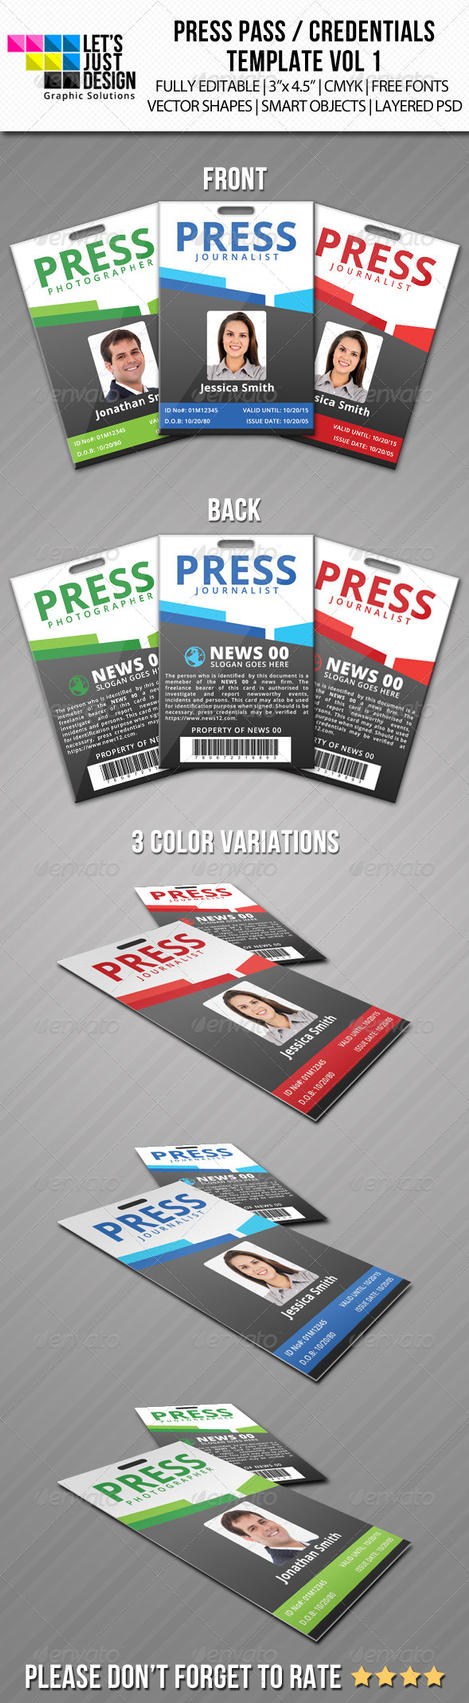 Press pass credentials template vol 1 by jasonmendes on for Media pass template